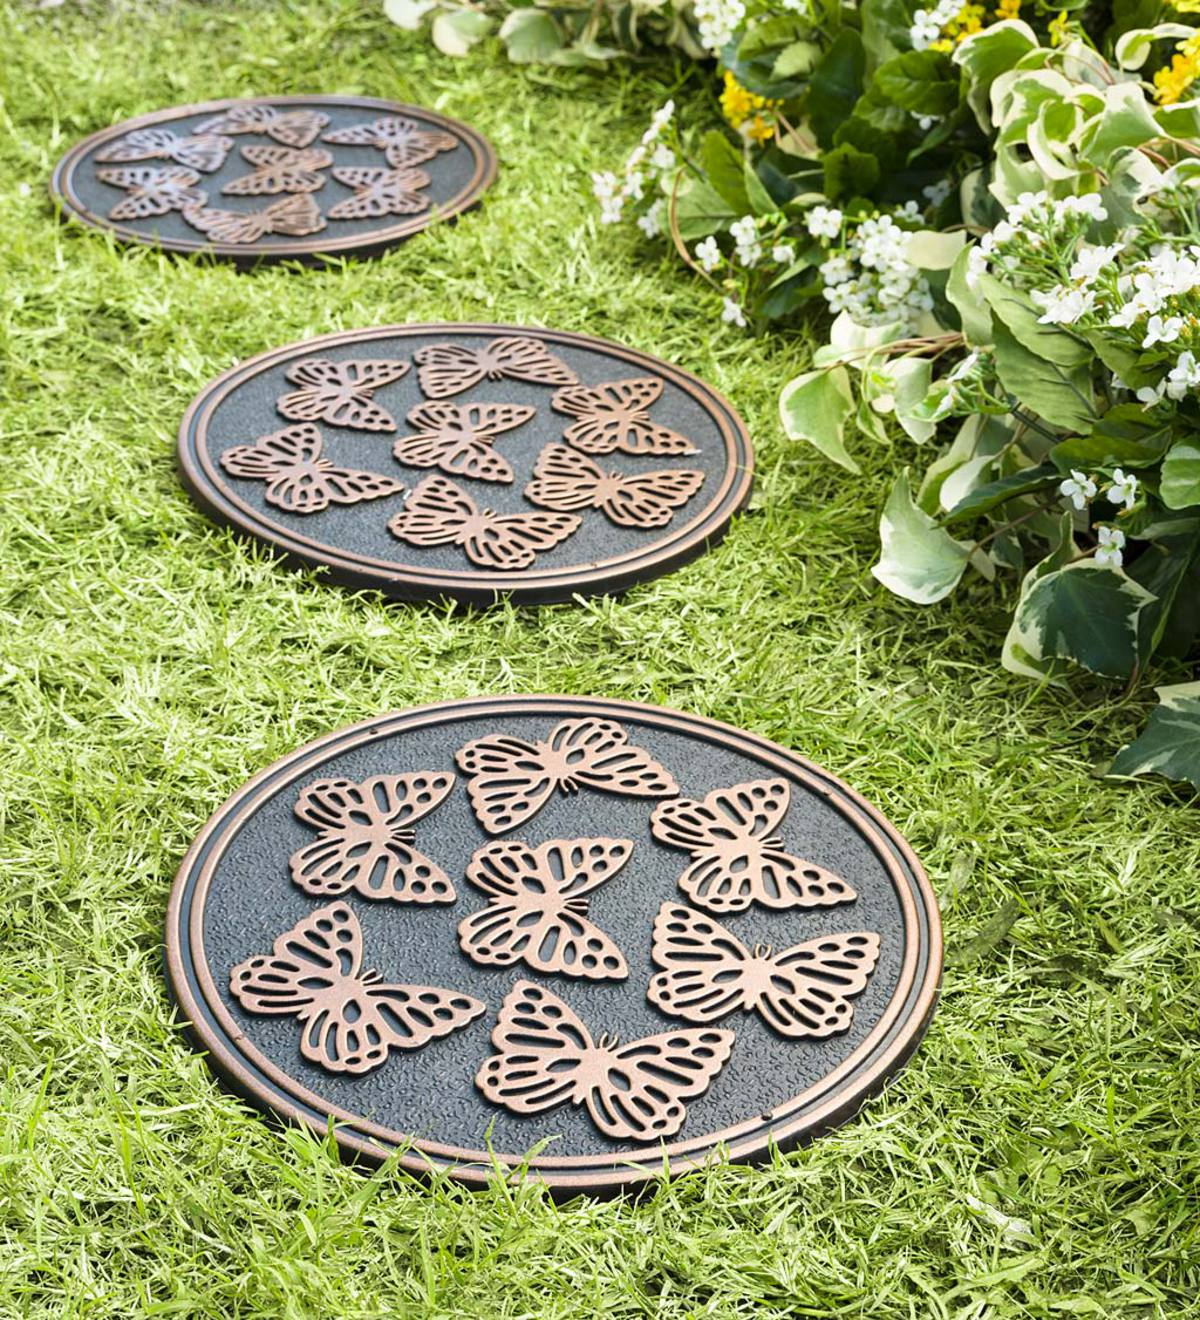 Recycled Rubber Stepping Stones, Set of 3 - Copper Butterflies